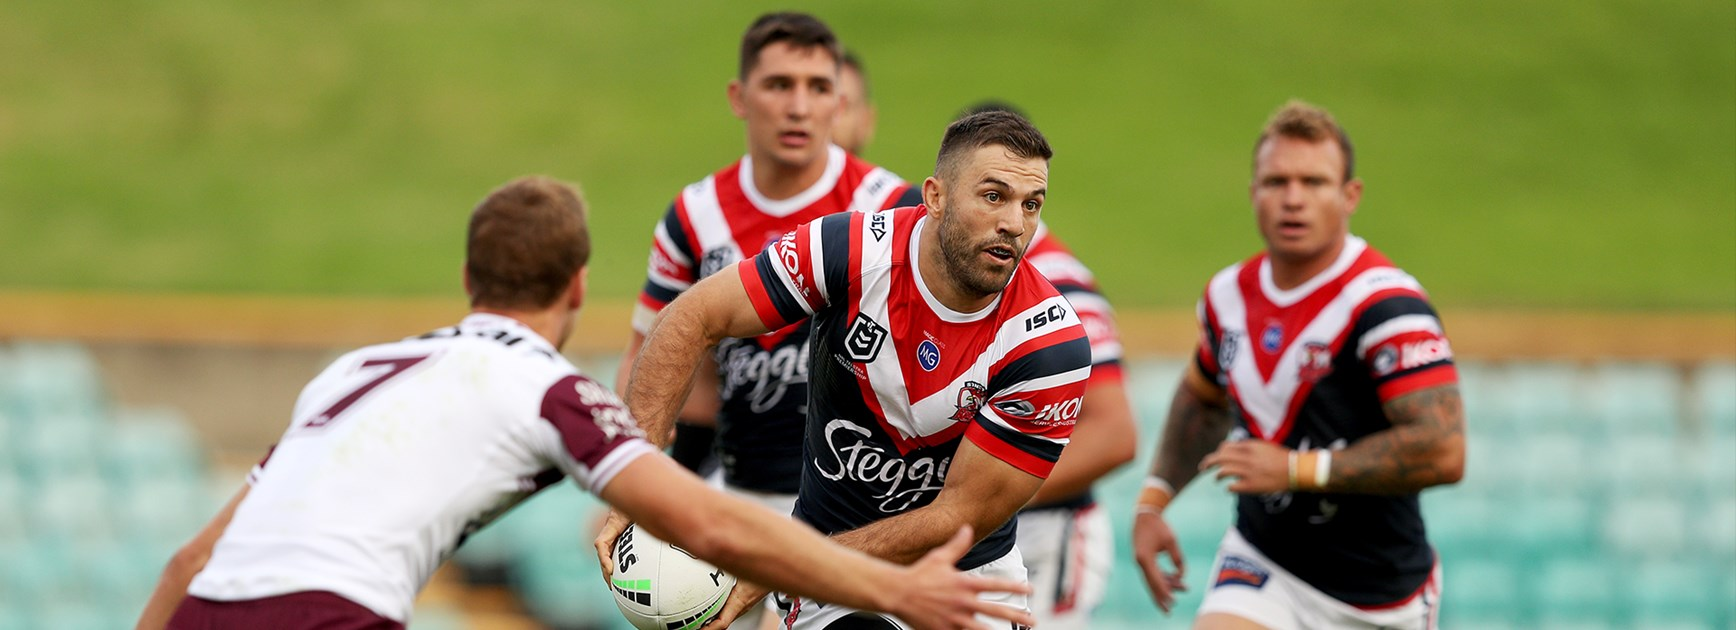 Roosters Fantasy and Stats Wrap | Round 2